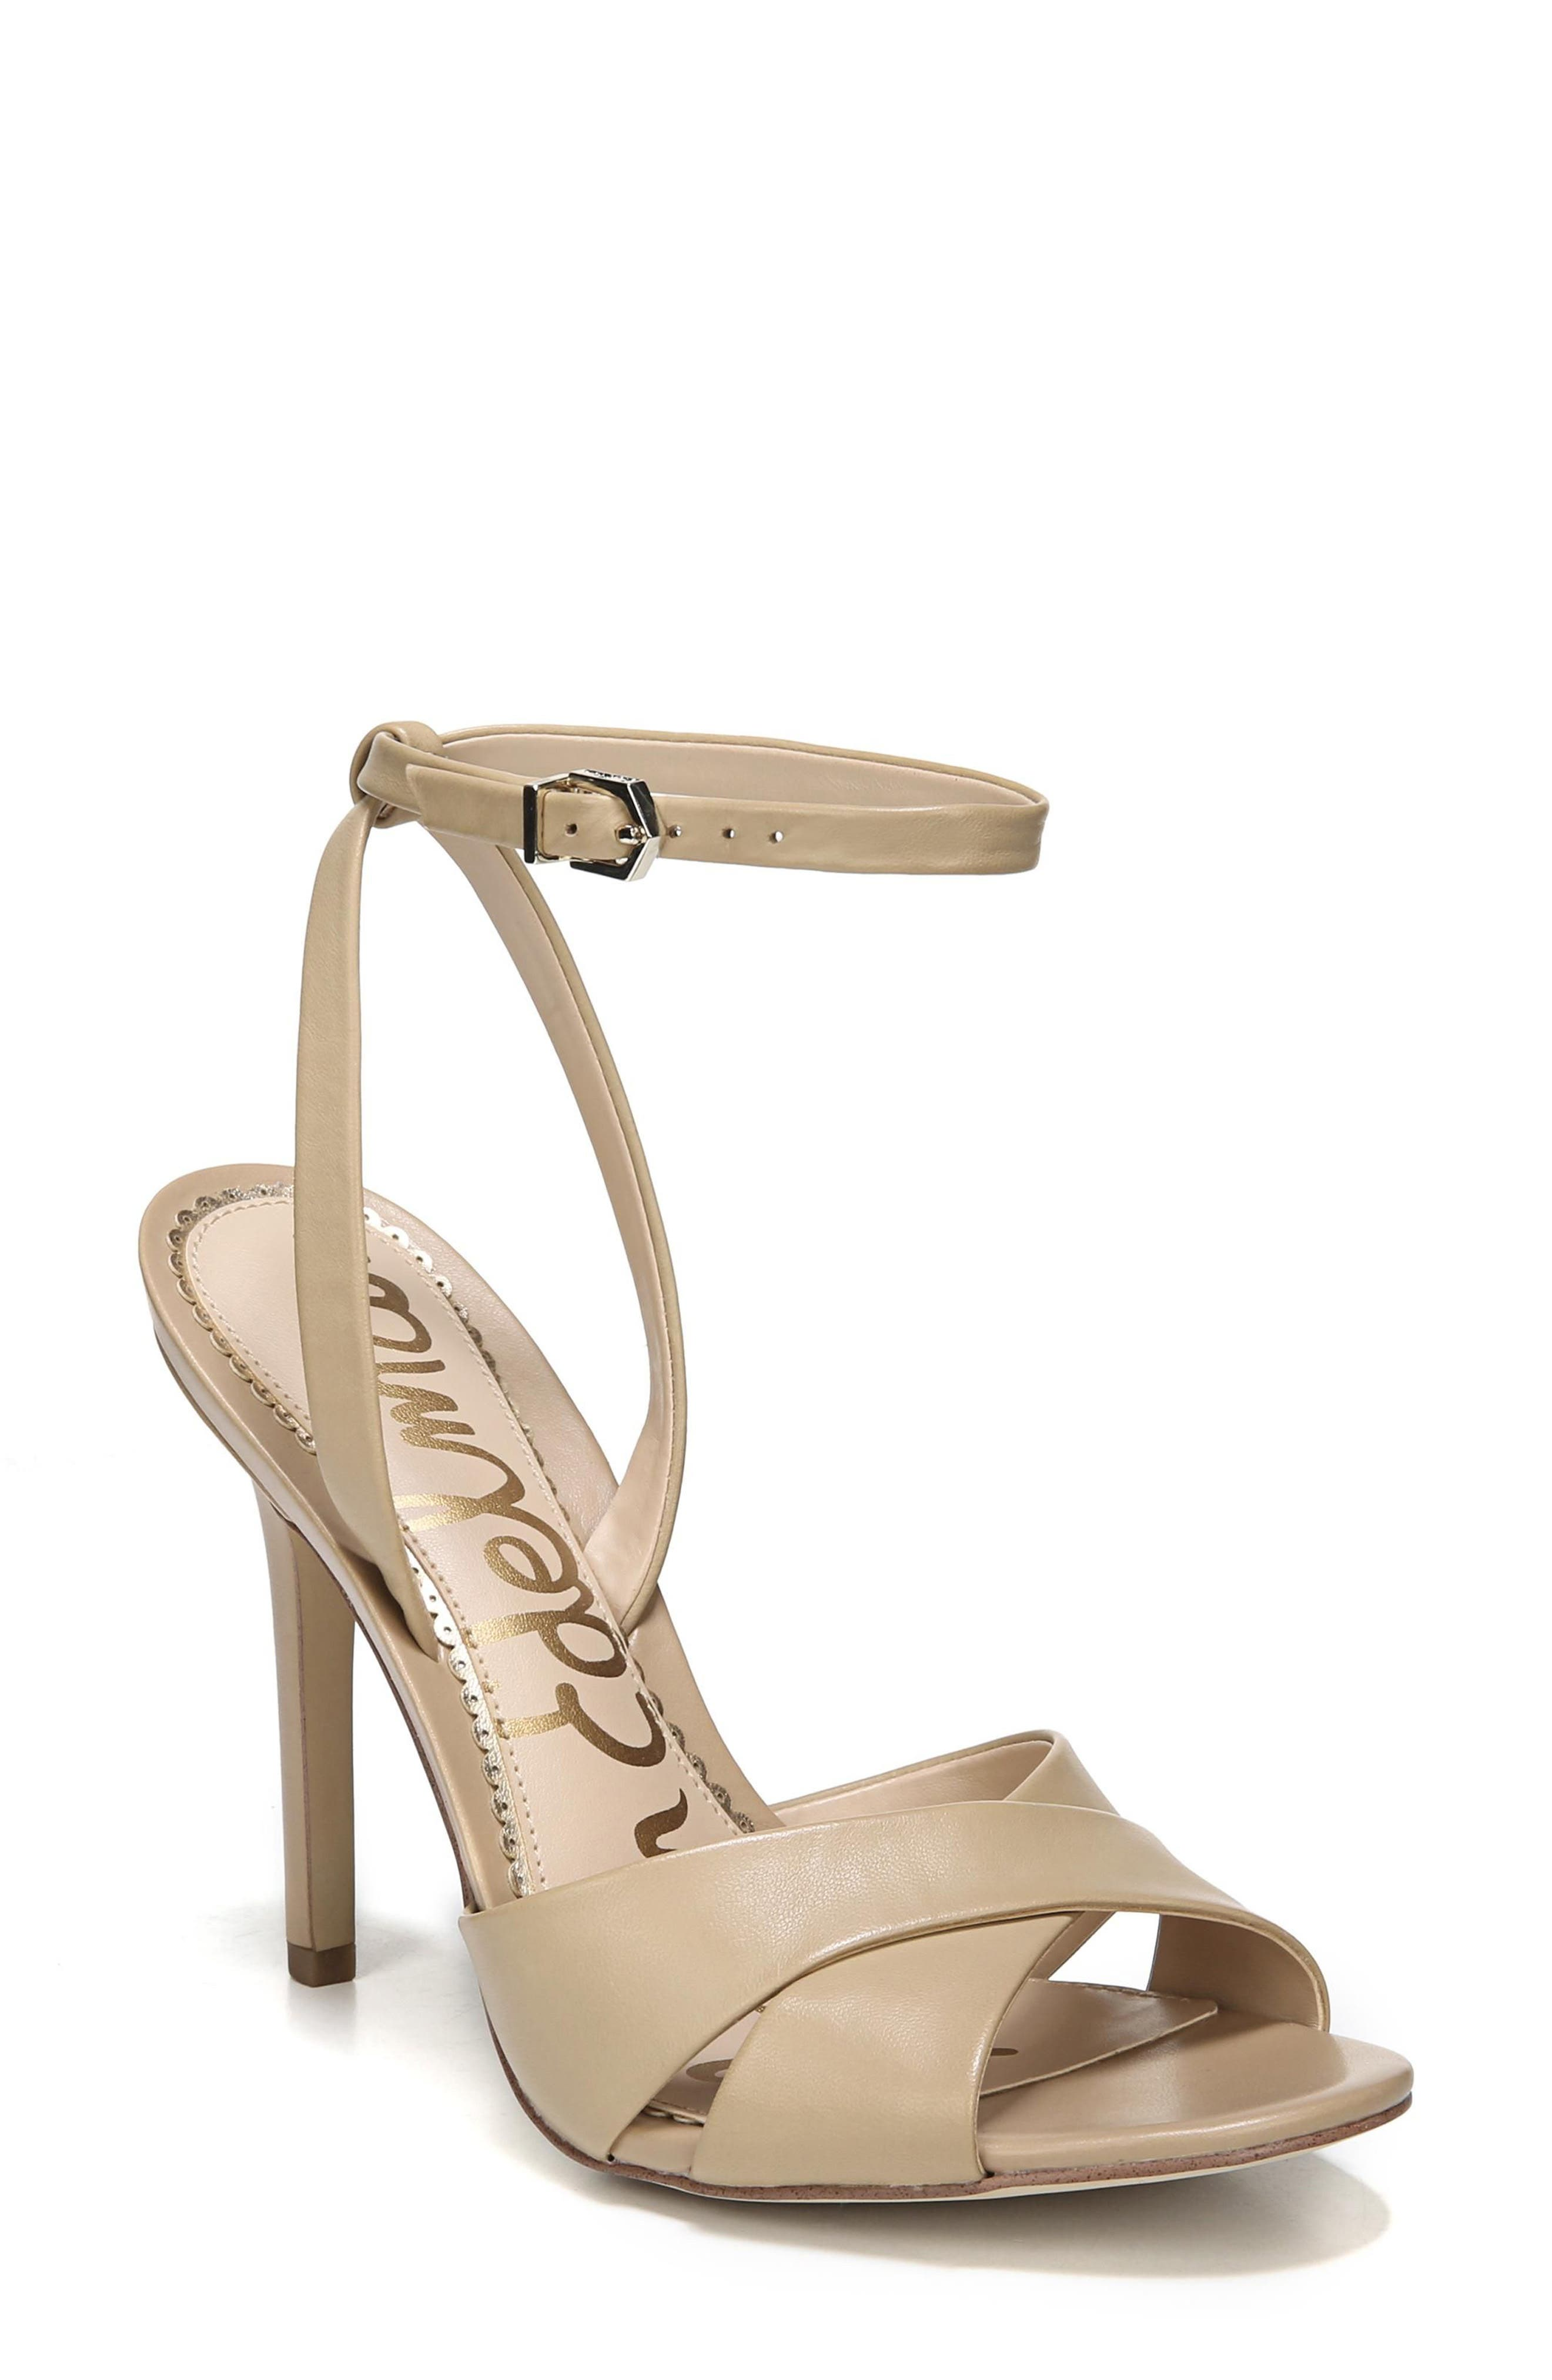 Aly Ankle Strap Sandal,                             Main thumbnail 1, color,                             Classic Nude Leather